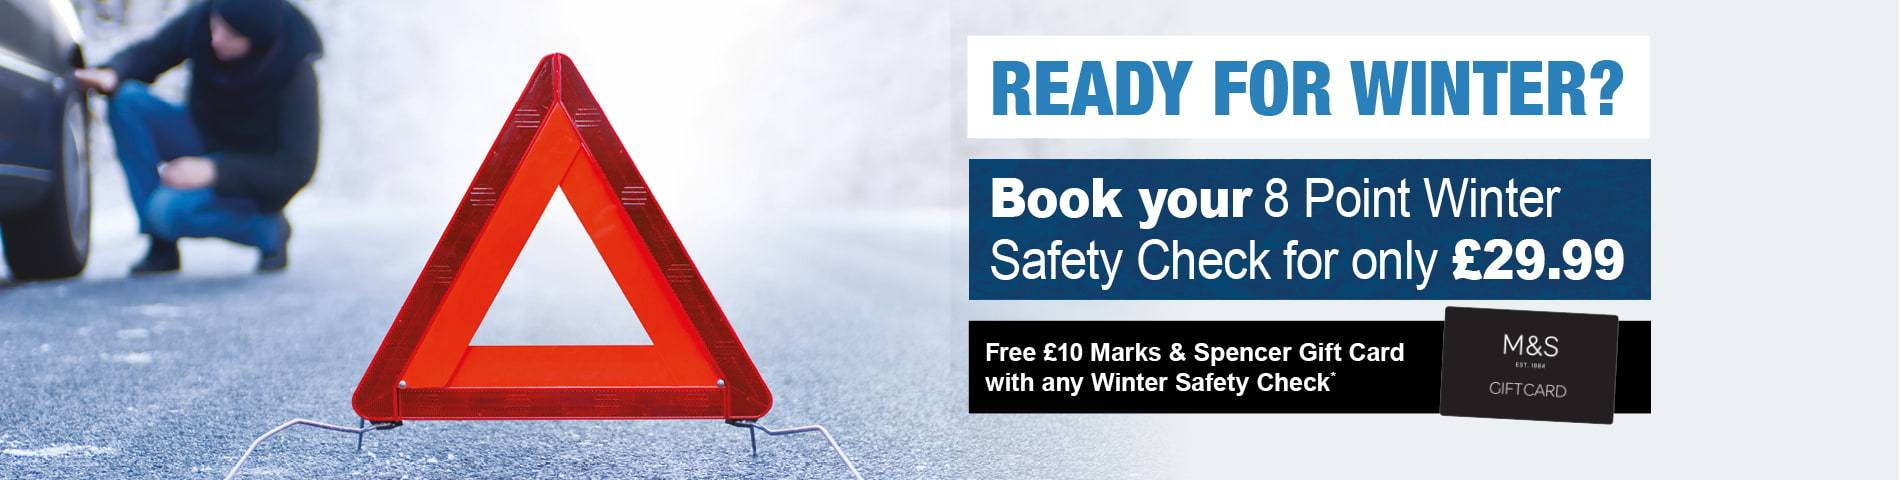 Winter Safety Check Banner